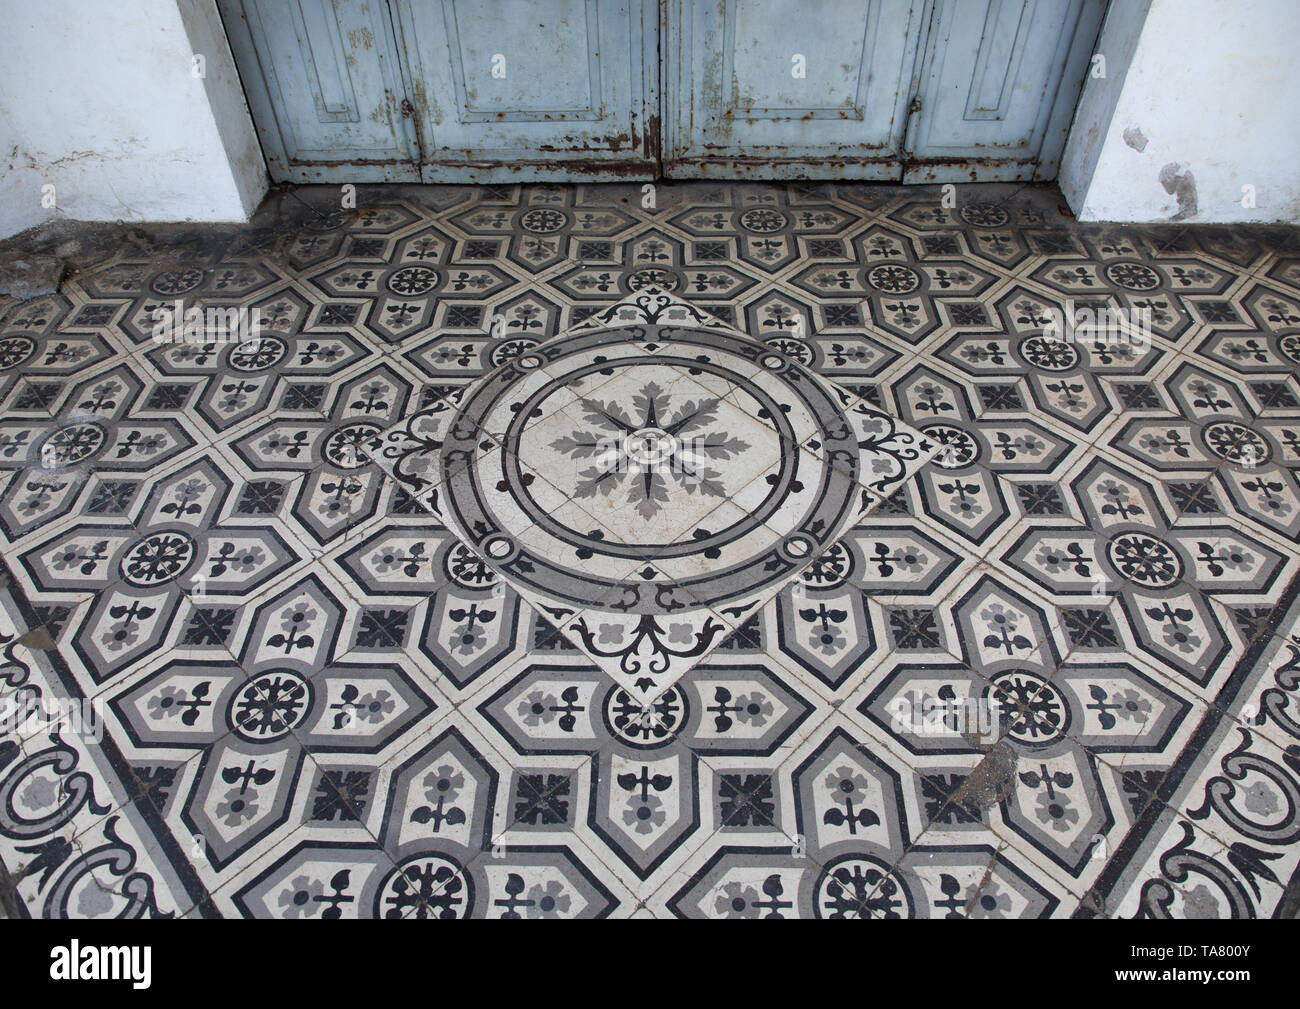 French tiles in the former banque centrale africaine, Sud-Comoé, Grand-Bassam, Ivory Coast - Stock Image